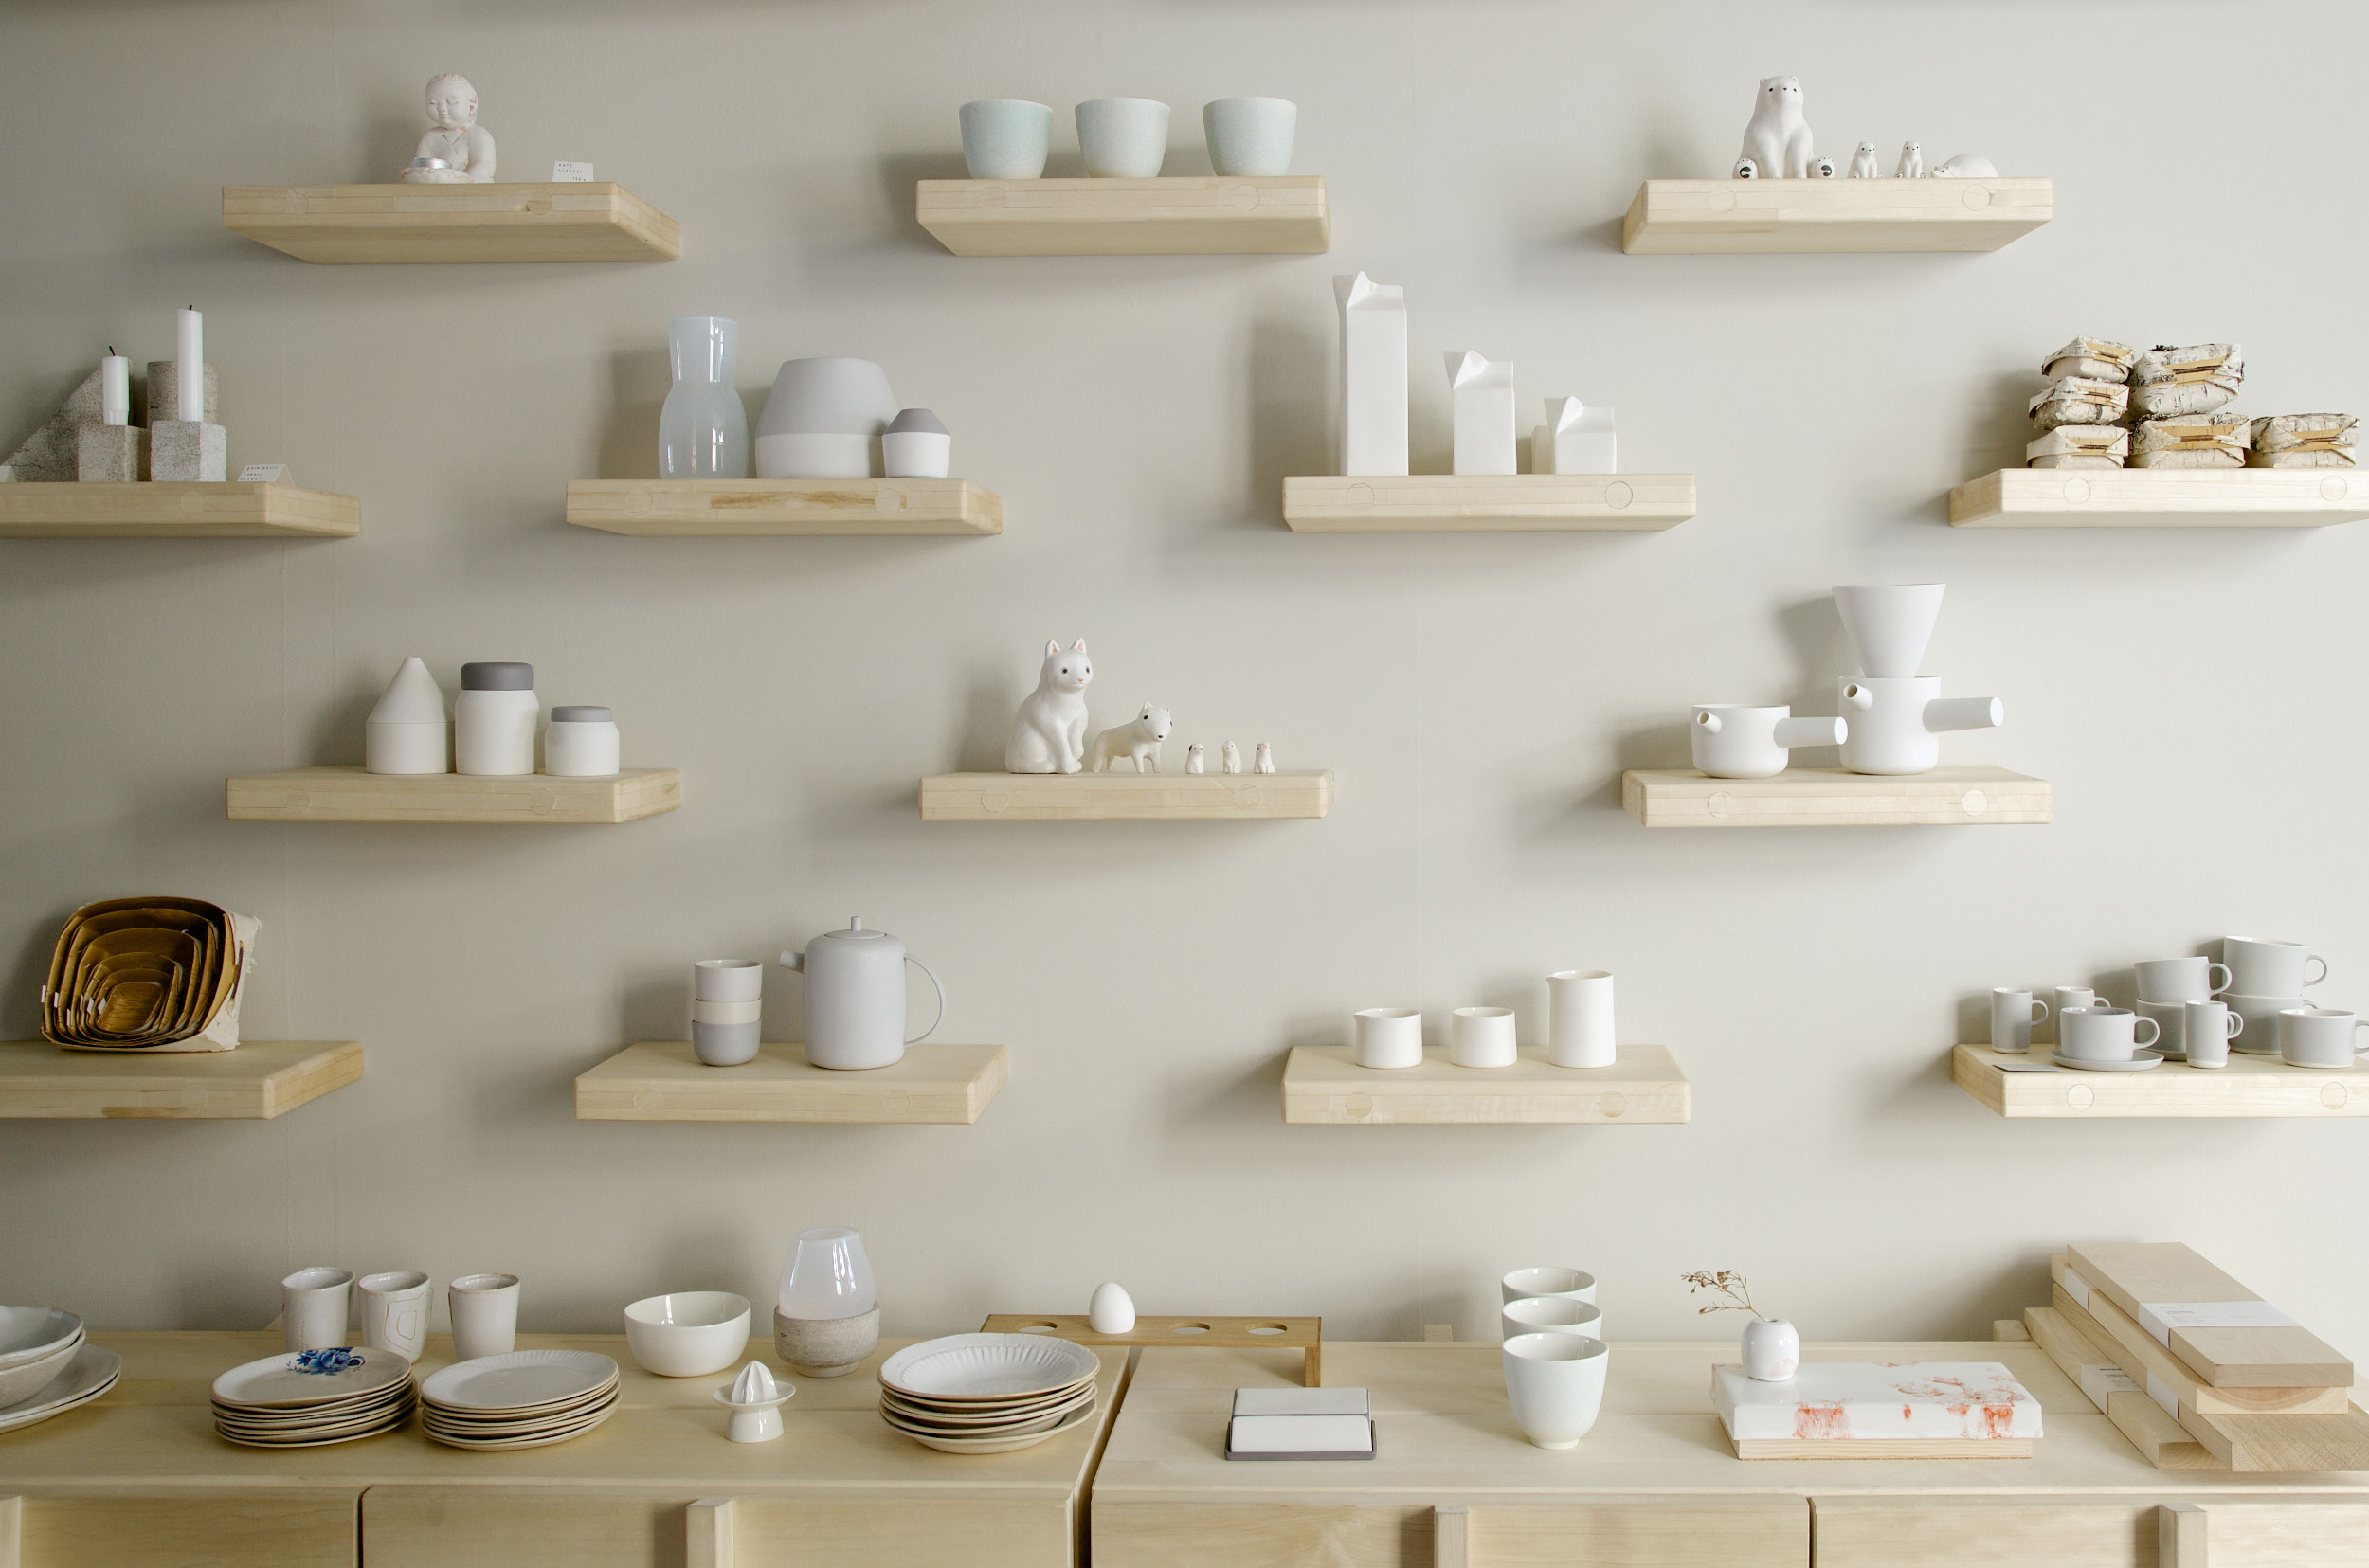 Lokal helsinki boutique unique hand crafted items ceramics finland